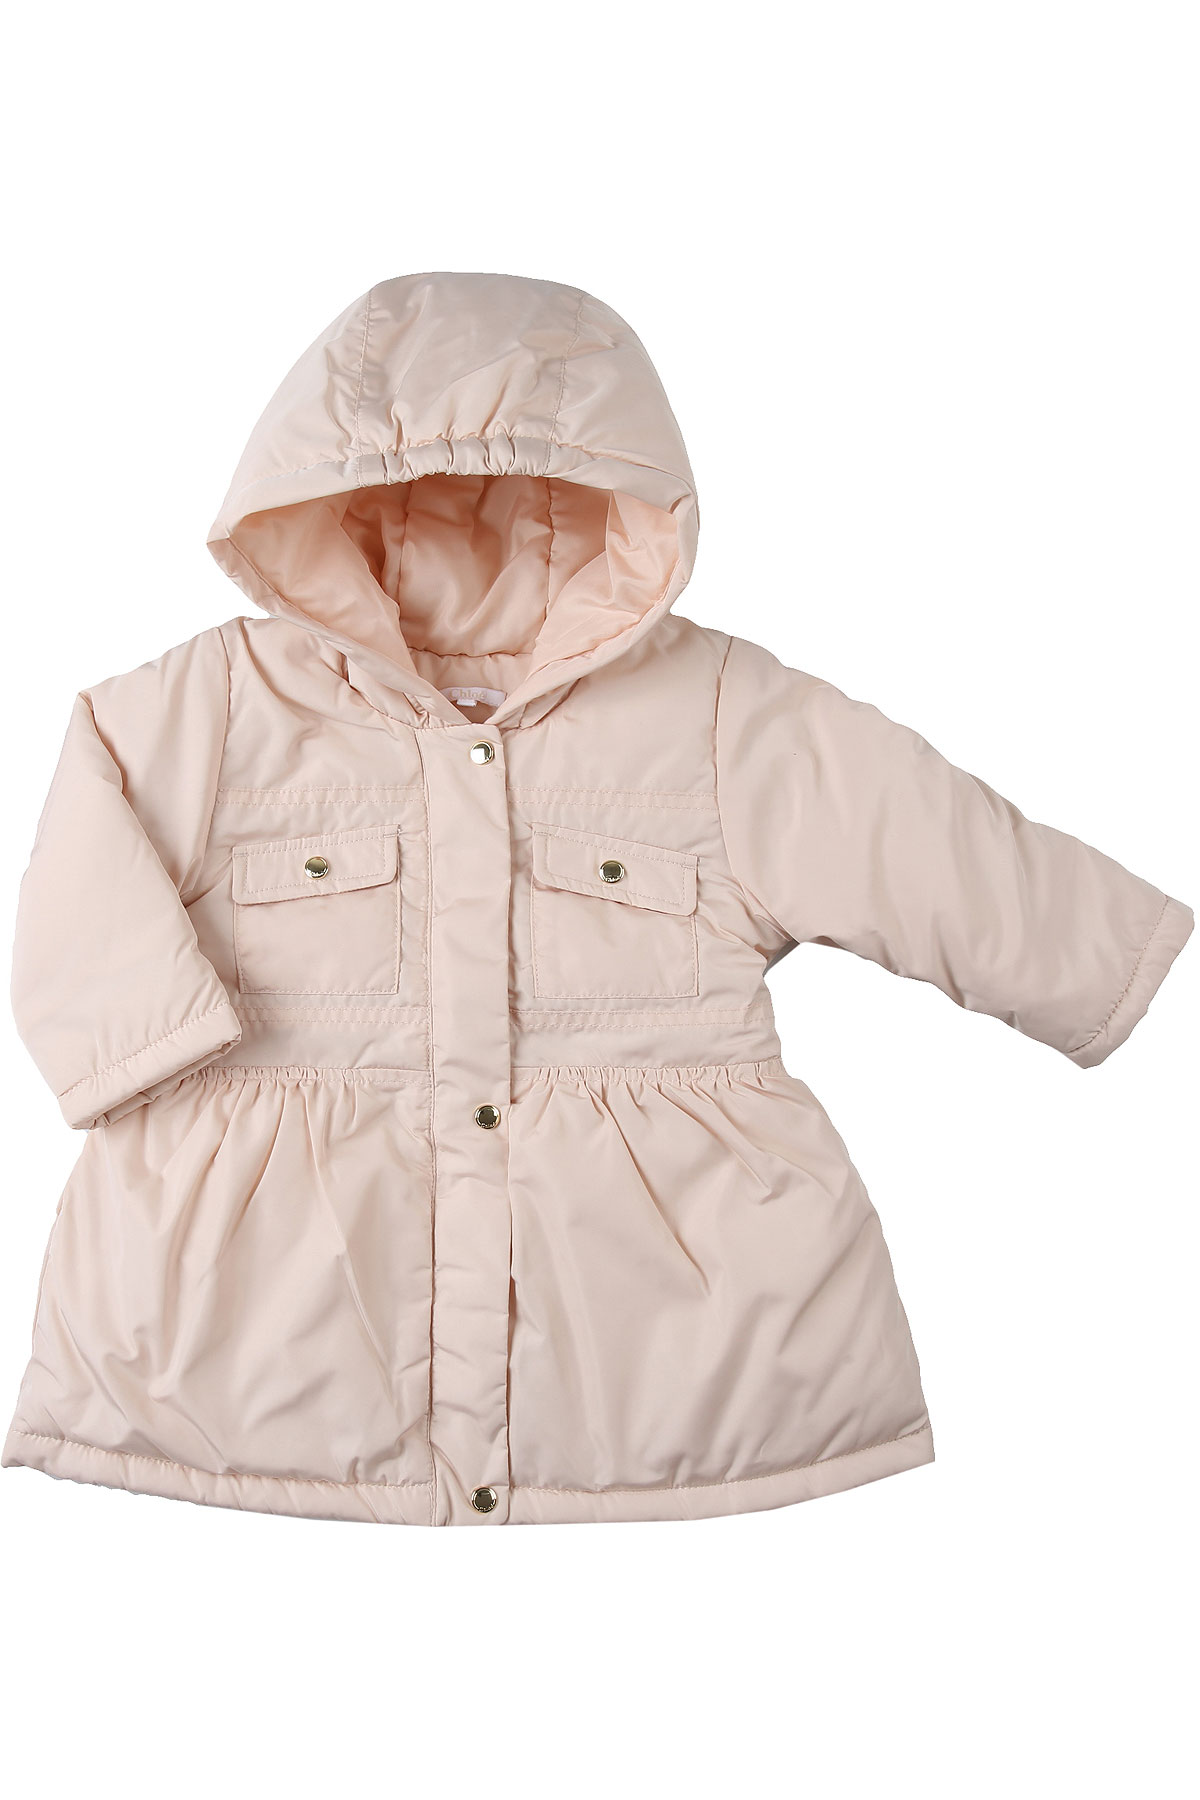 Chloe Baby Down Jacket for Girls On Sale, Pink, polyester, 2019, 12M 18M 2Y 3Y 9M